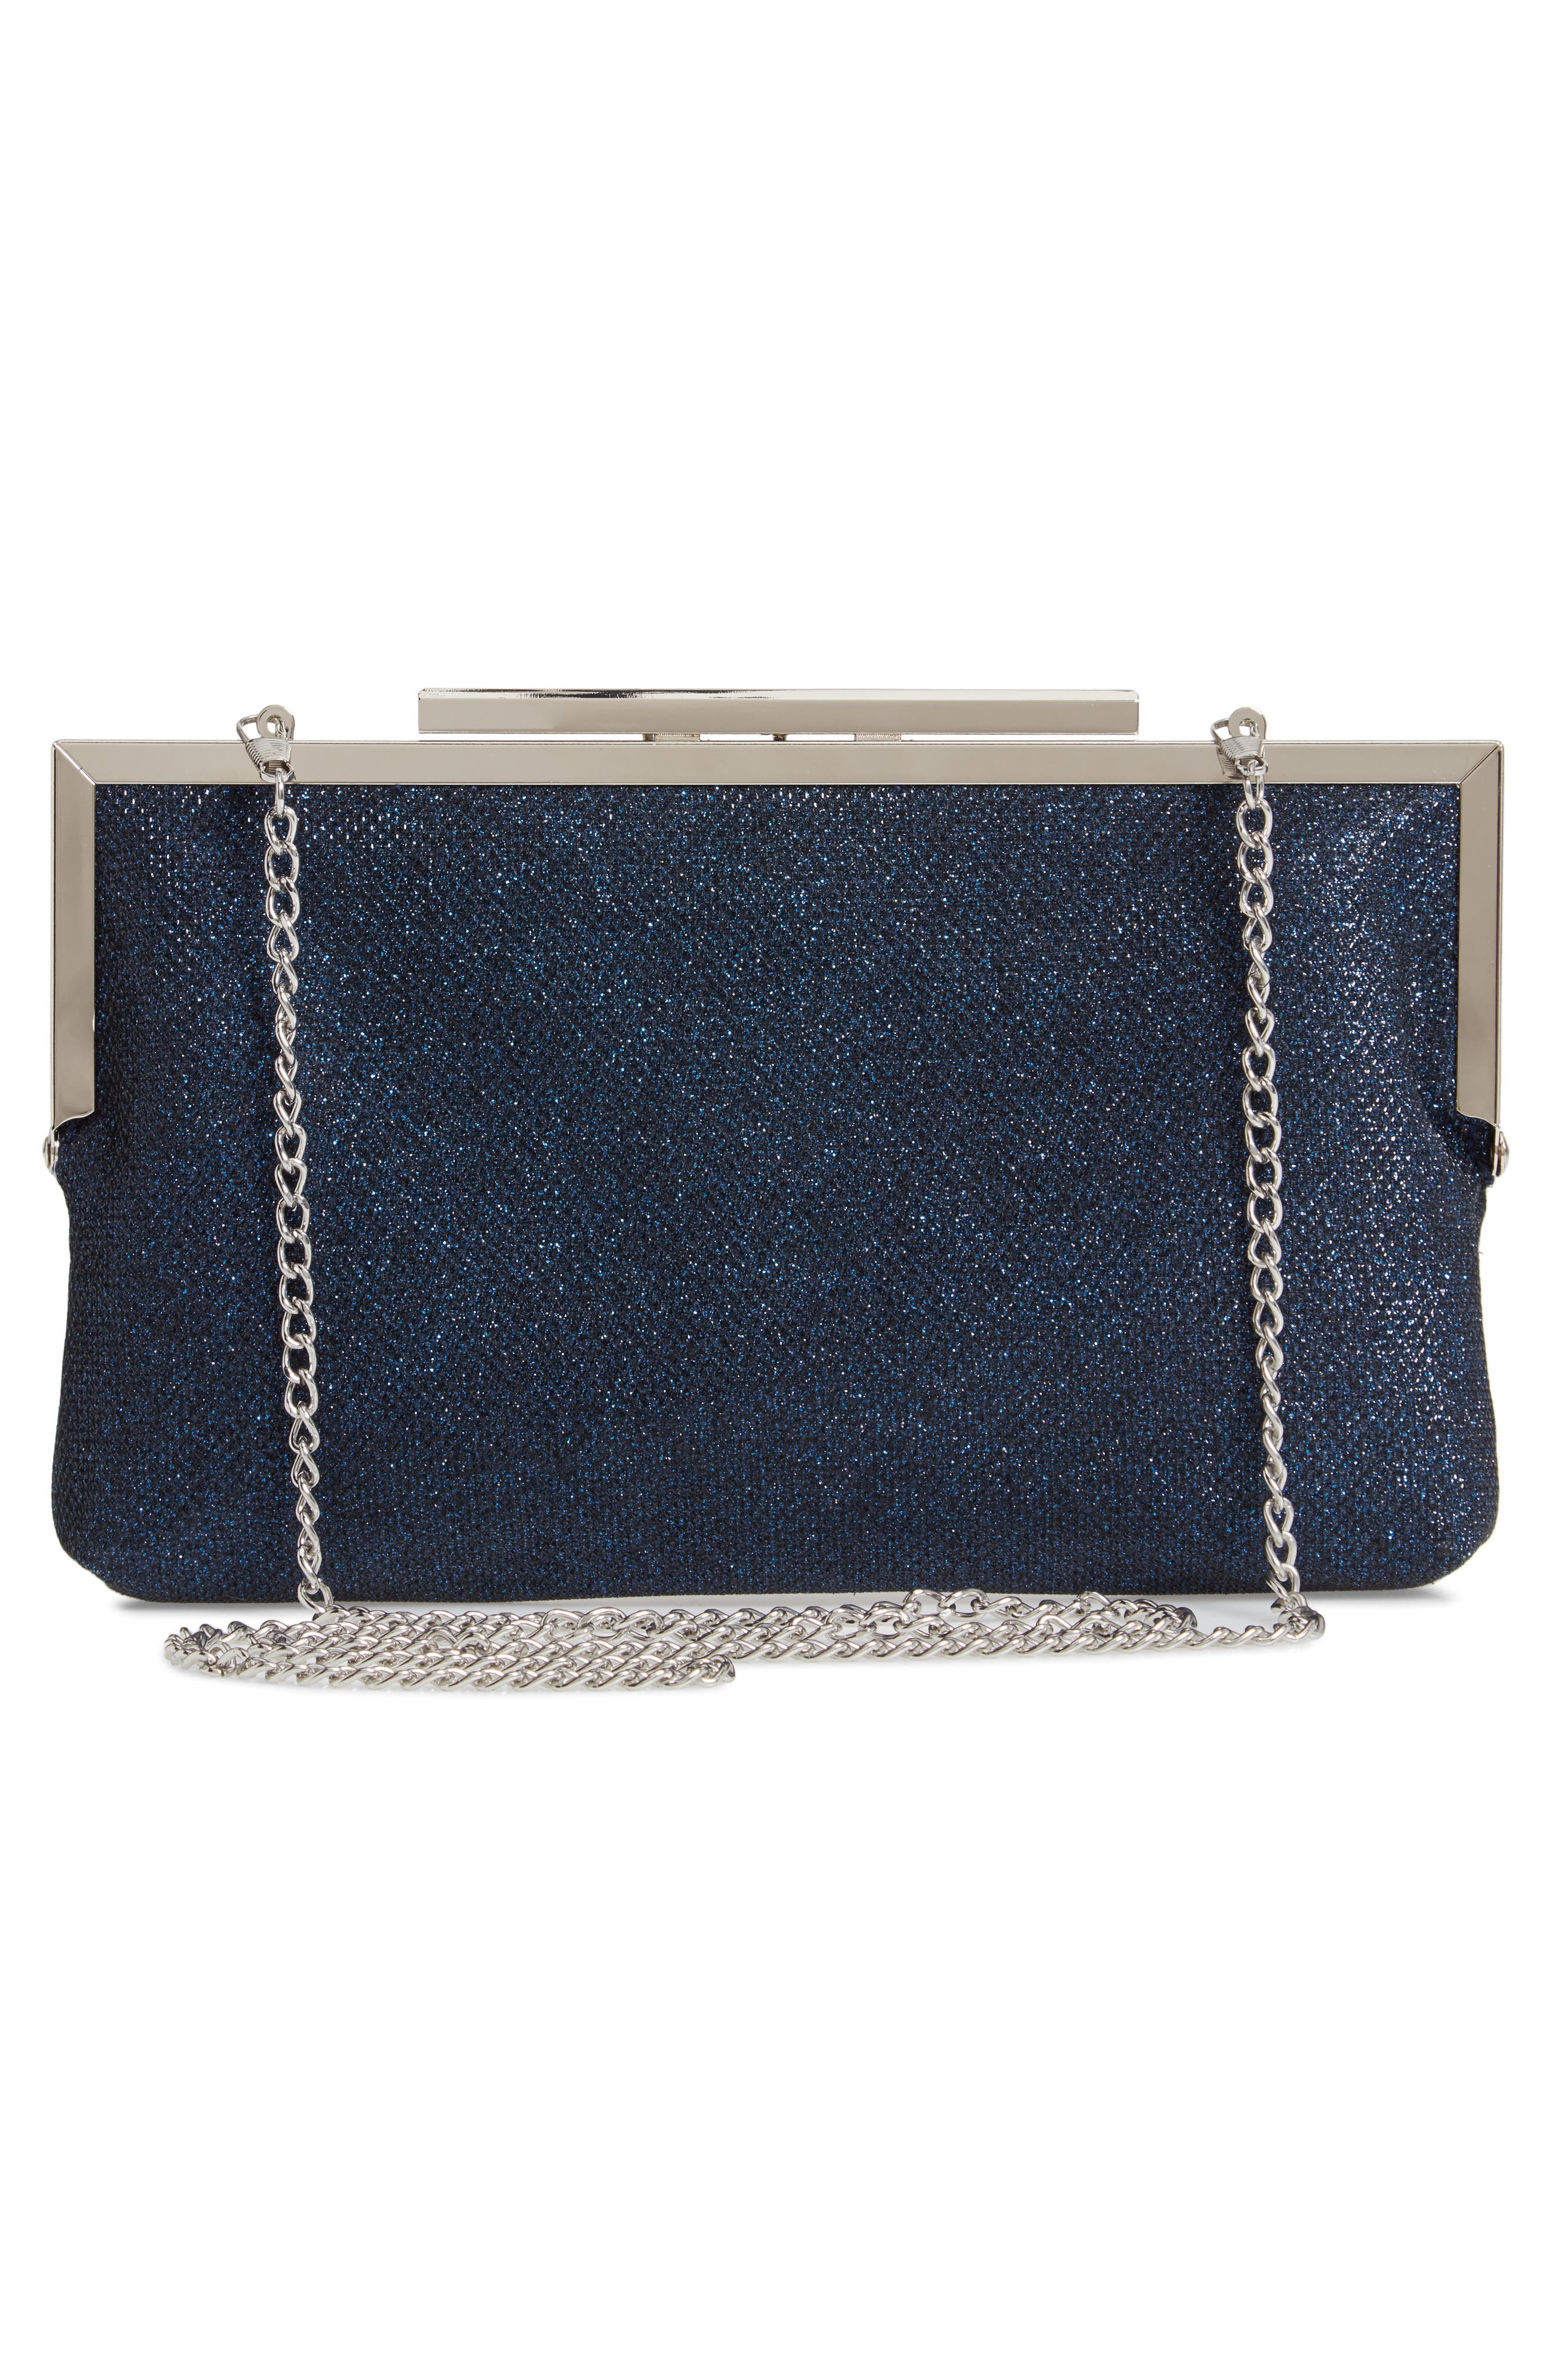 NINA, Louella Metallic Mesh Clutch, Alternate thumbnail 3, color, NAVY